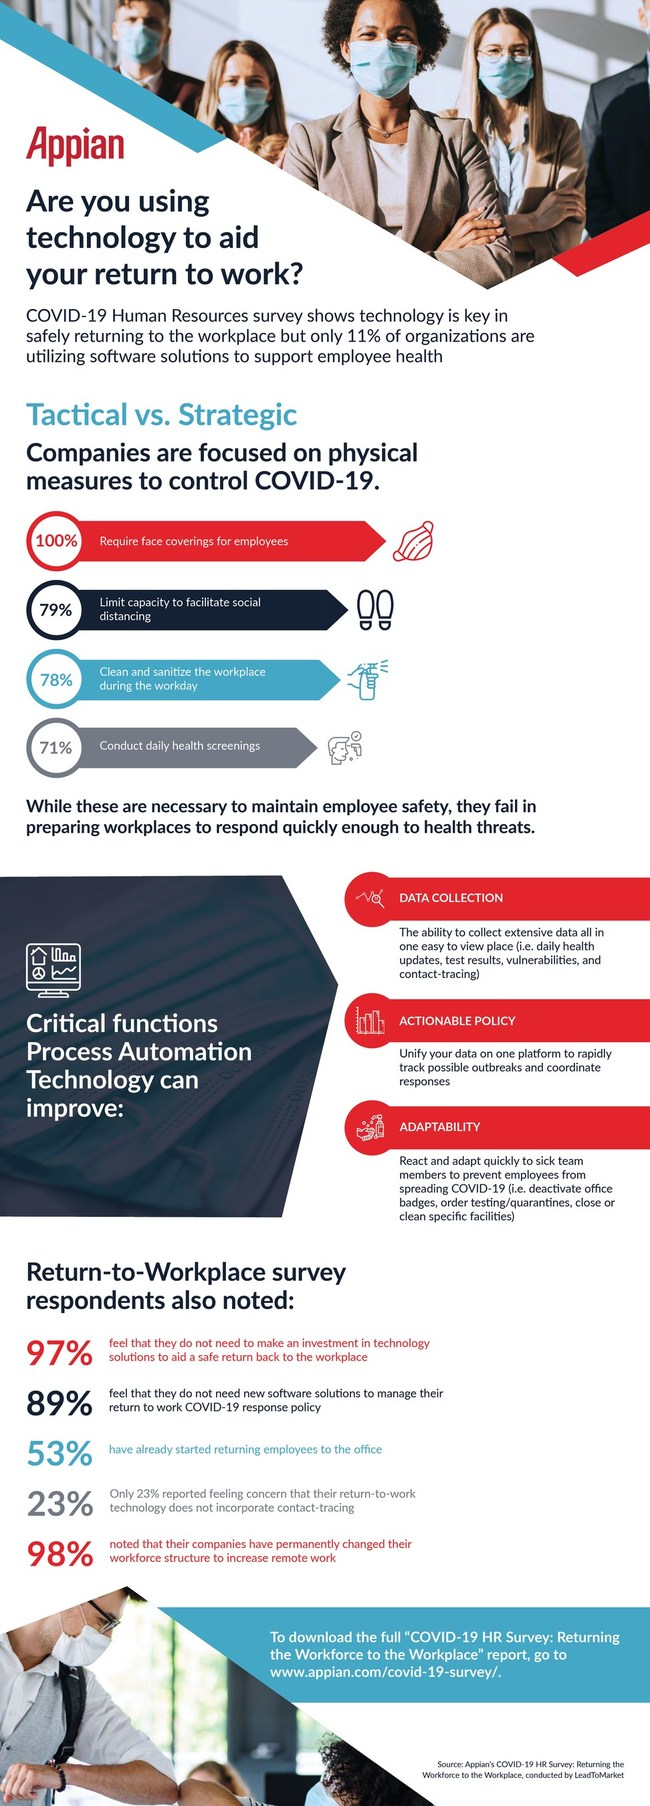 This report examines the thoughts and attitudes of Human Resources professionals at large U.S. organizations with respect to their organization's return-to-workplace approach and procedures. Software solutions are needed to give HR pros safety measures and capabilities for managing the complexities of the workforce return.